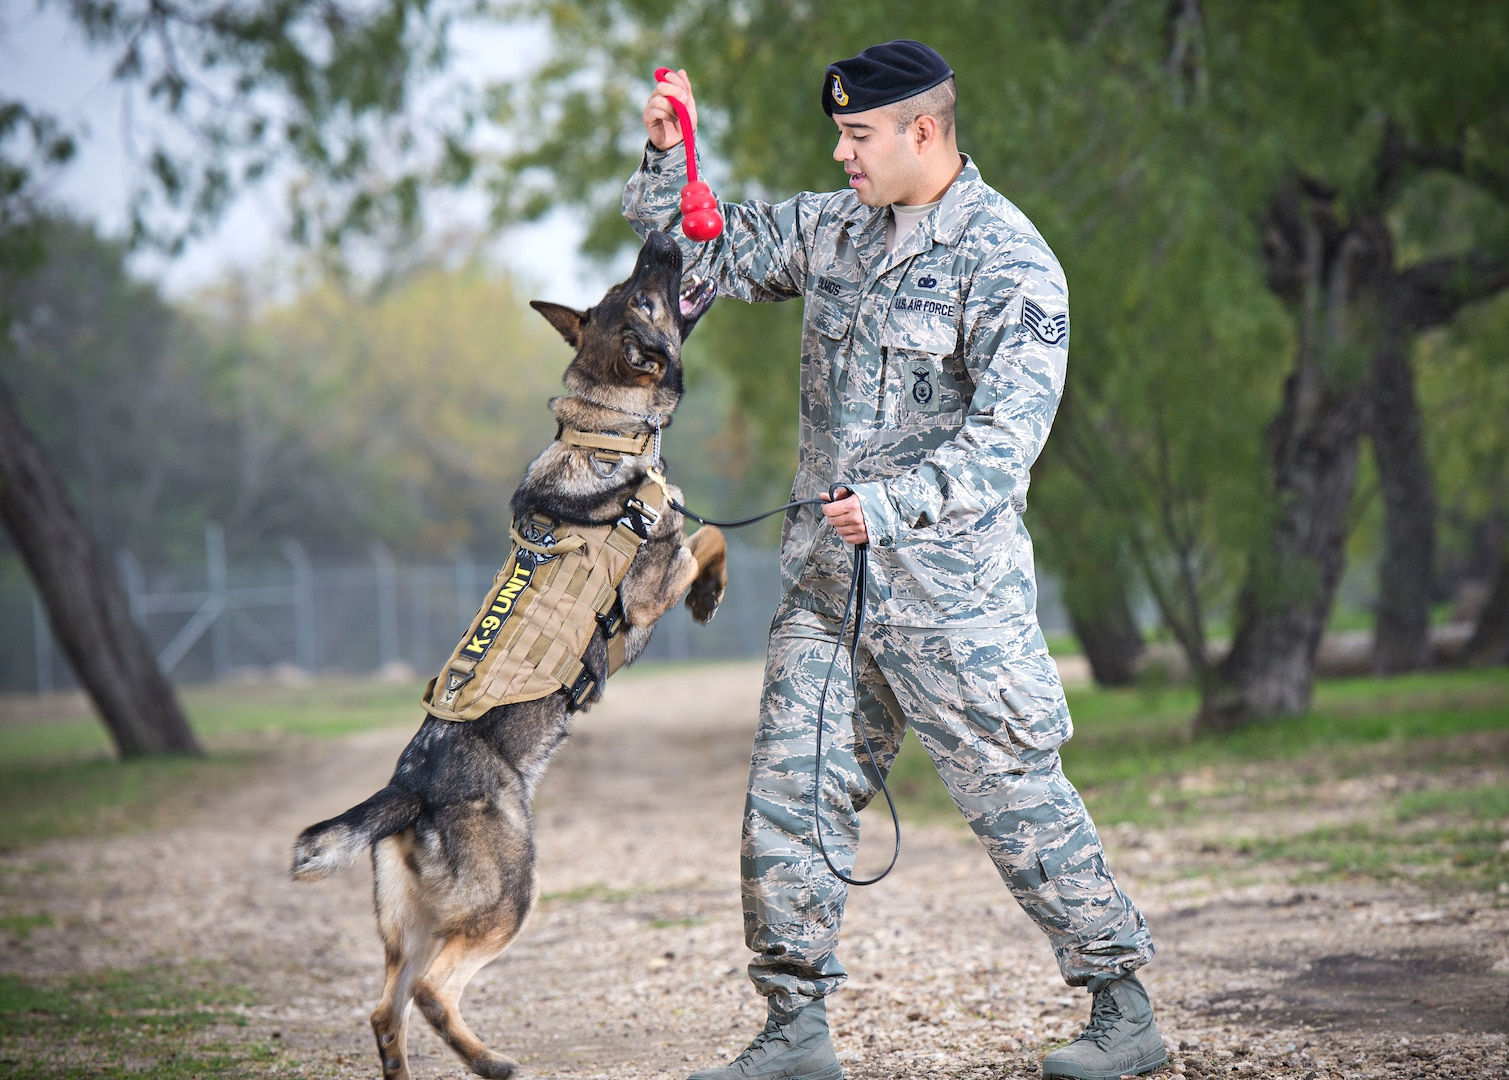 Staff Sgt. Paul Olmos, military working dog handler assigned to the 802nd Security Forces Squadron at Joint Base San Antonio-Lackland, had been partnered with MWD Daysi since September 2014. MWD Daysi was narcotic detection certified and was assigned to the 802nd SFS post her certification in January 2014. Due to an aggressive cancer and an inoperable malignant tumor, MWD Daysi was laid to rest Feb. 27. (U.S. Air Force photo by Benjamin Faske/released)